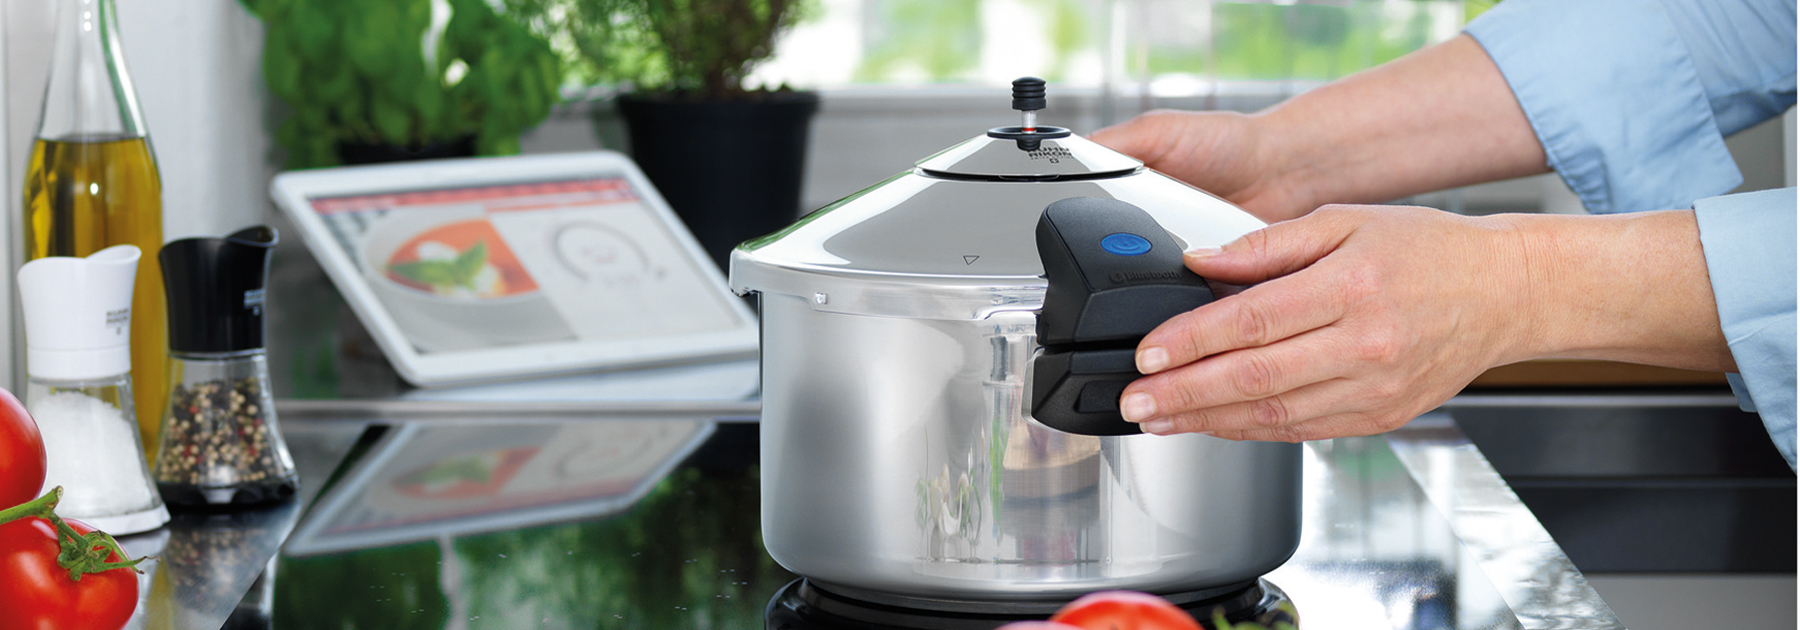 DUROMATIC COMFORT: Bluetooth enabled pressure cooker